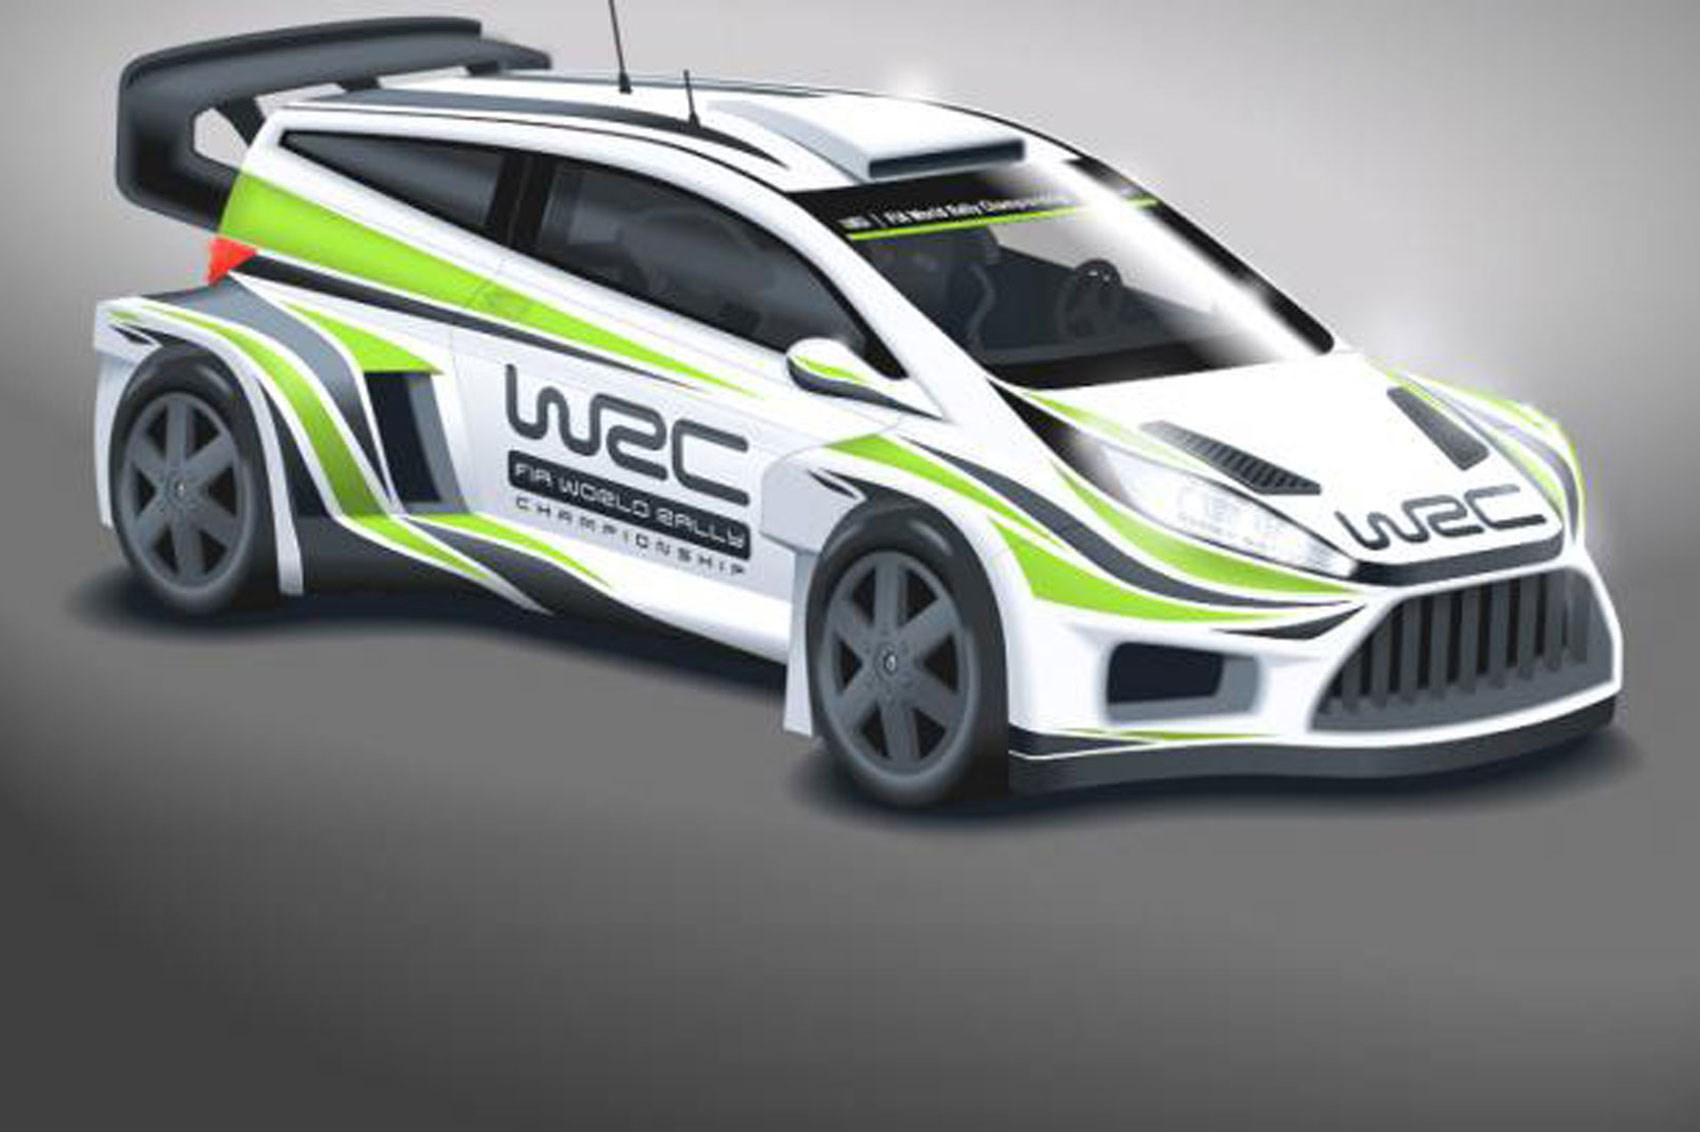 Ultrablogus  Winsome Wild New Look For Wrc Cars In  By Car Magazine With Hot Wrc Cars Will Get Wider Bodies Bigger Wings And More Power For  With Breathtaking Porsche  Gt Interior Also Tesla Carbon Fiber Interior In Addition Camry  Interior And Mercury Grand Marquis Interior As Well As Cadillac Ats Interior Additionally Audi A  Interior From Carmagazinecouk With Ultrablogus  Hot Wild New Look For Wrc Cars In  By Car Magazine With Breathtaking Wrc Cars Will Get Wider Bodies Bigger Wings And More Power For  And Winsome Porsche  Gt Interior Also Tesla Carbon Fiber Interior In Addition Camry  Interior From Carmagazinecouk